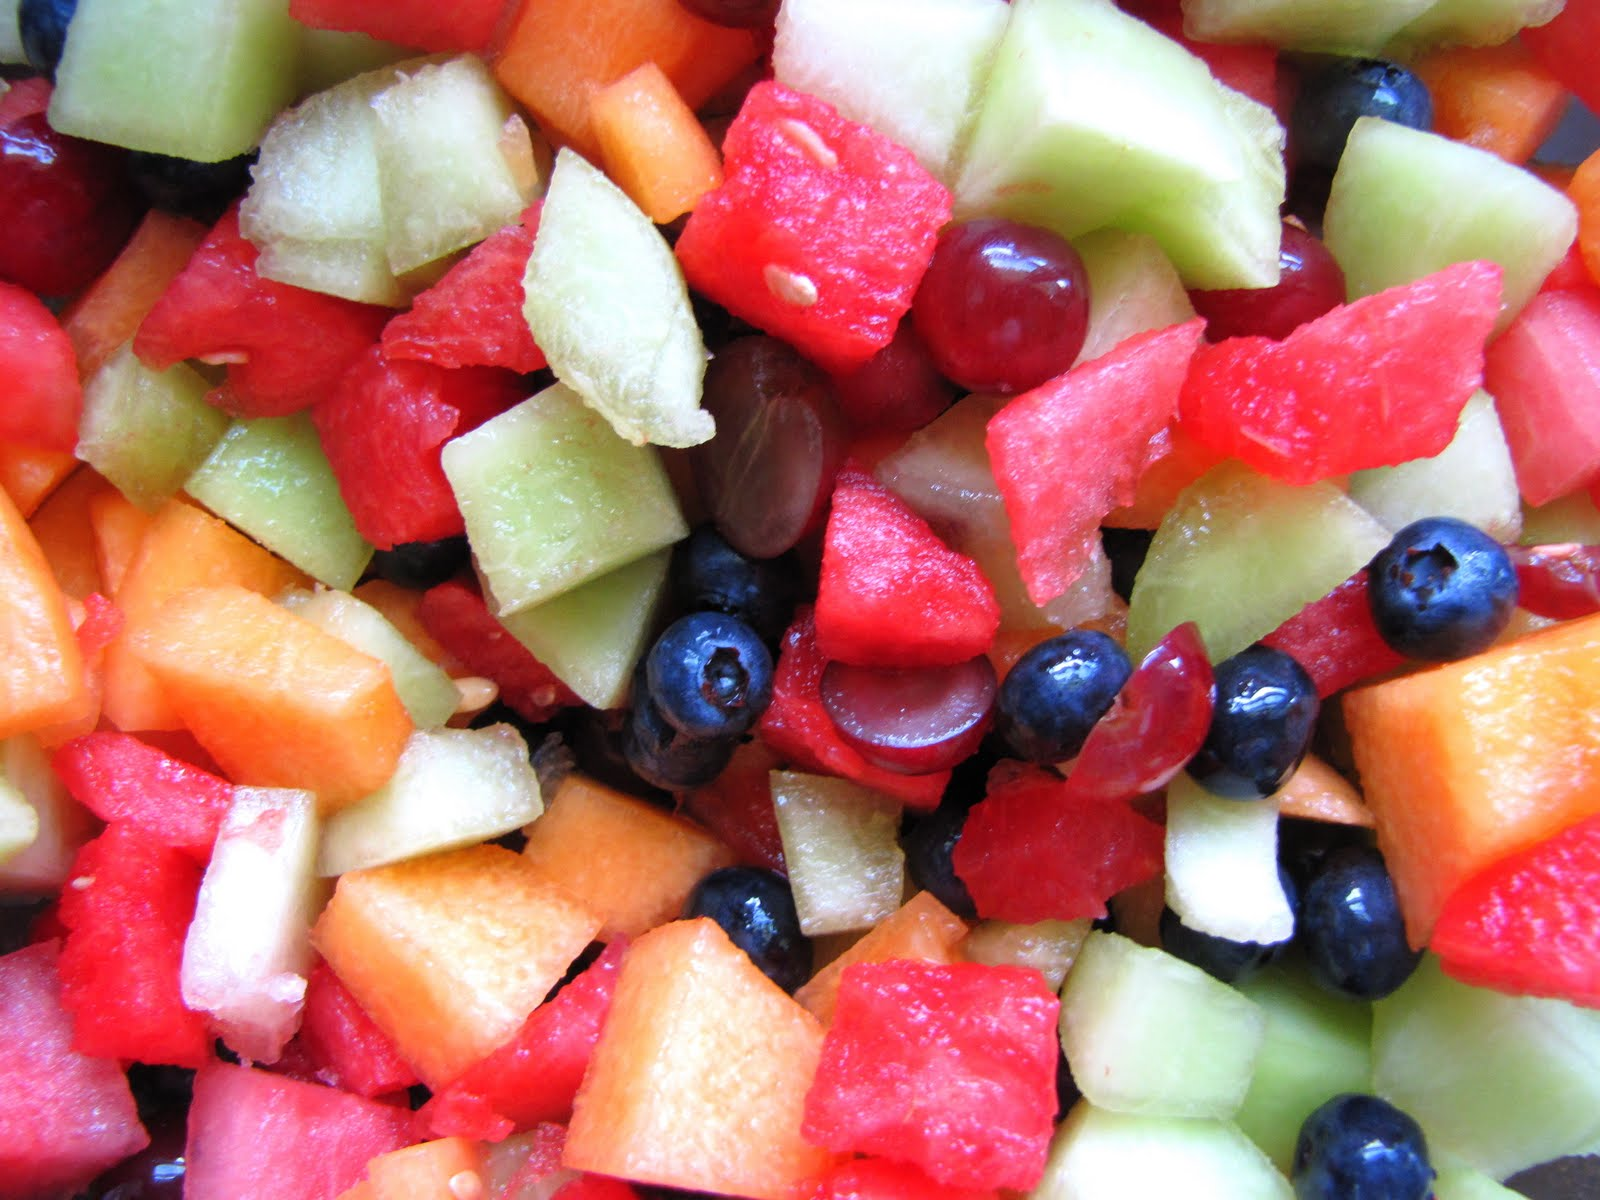 Fruit Tumblr Www Pixshark Com Images Galleries With A